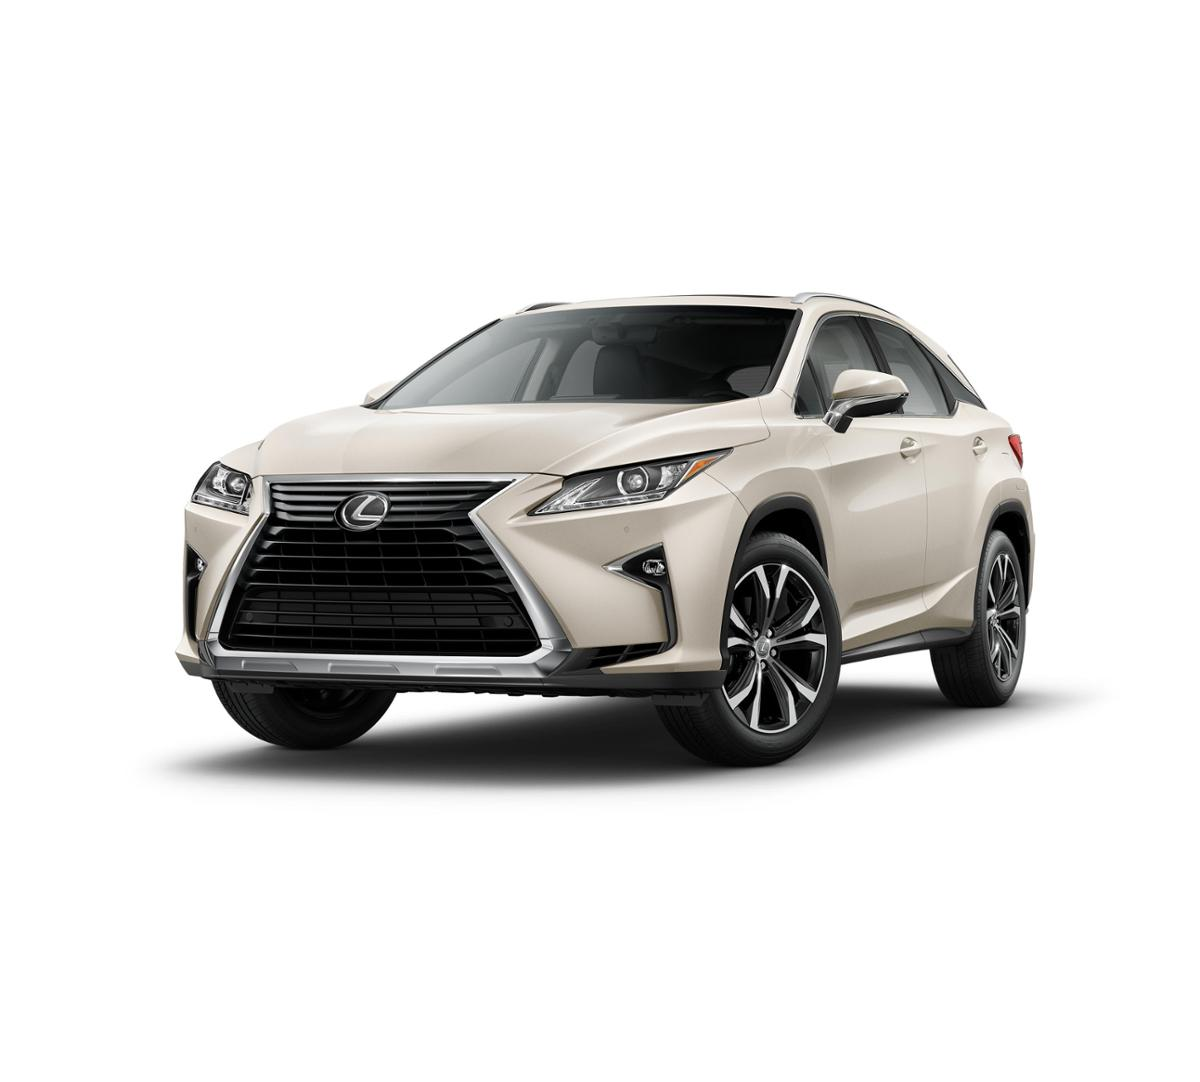 2017 Lexus RX 350 Vehicle Photo in Santa Barbara, CA 93105